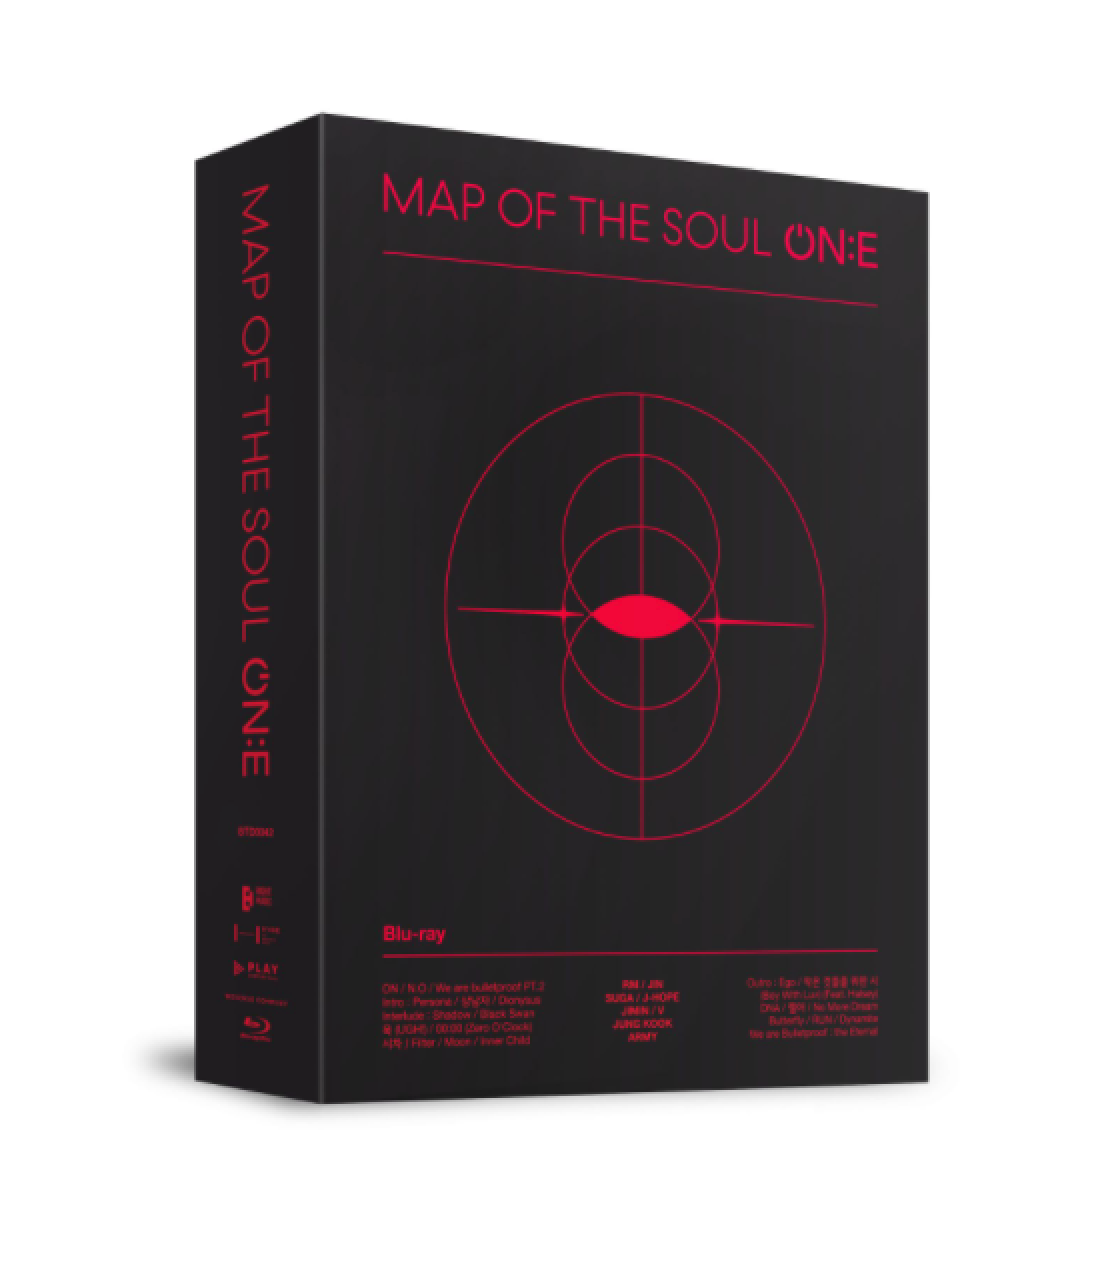 bts map of the soul on:e blu-ray black outbox